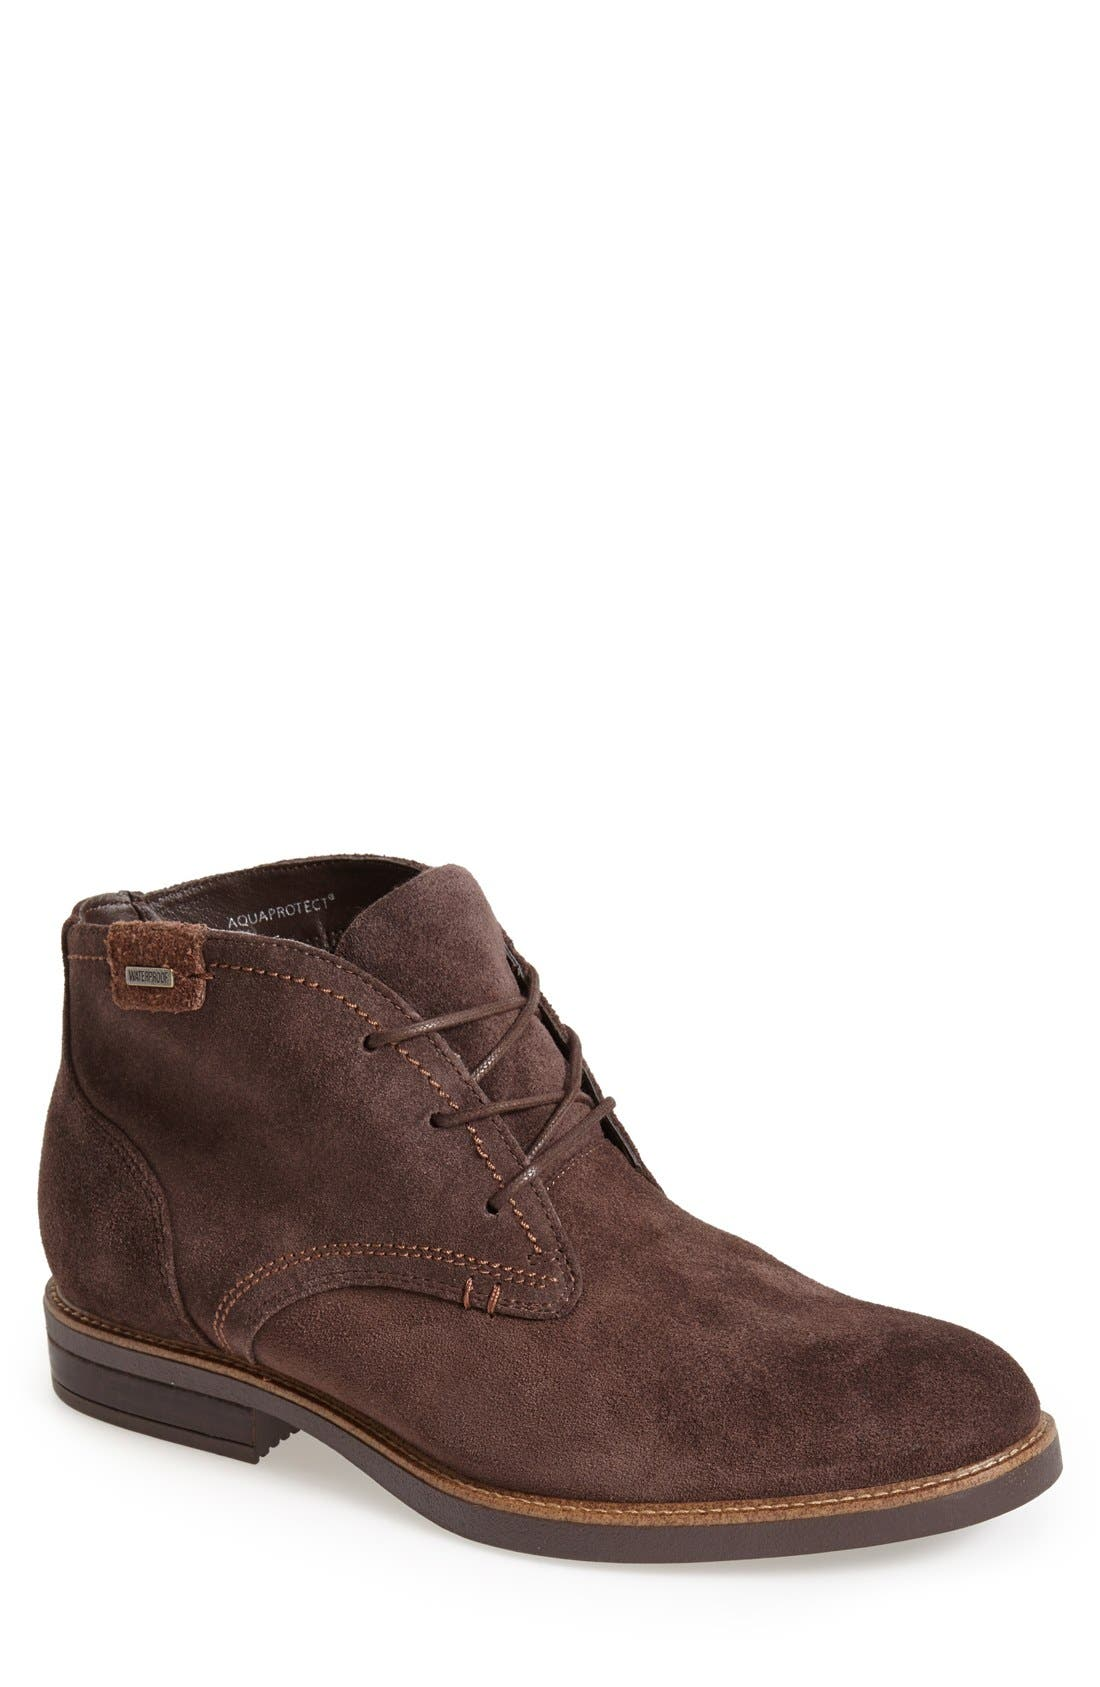 Alternate Image 1 Selected - Blondo 'Gustave' Waterproof Chukka Boot (Men)